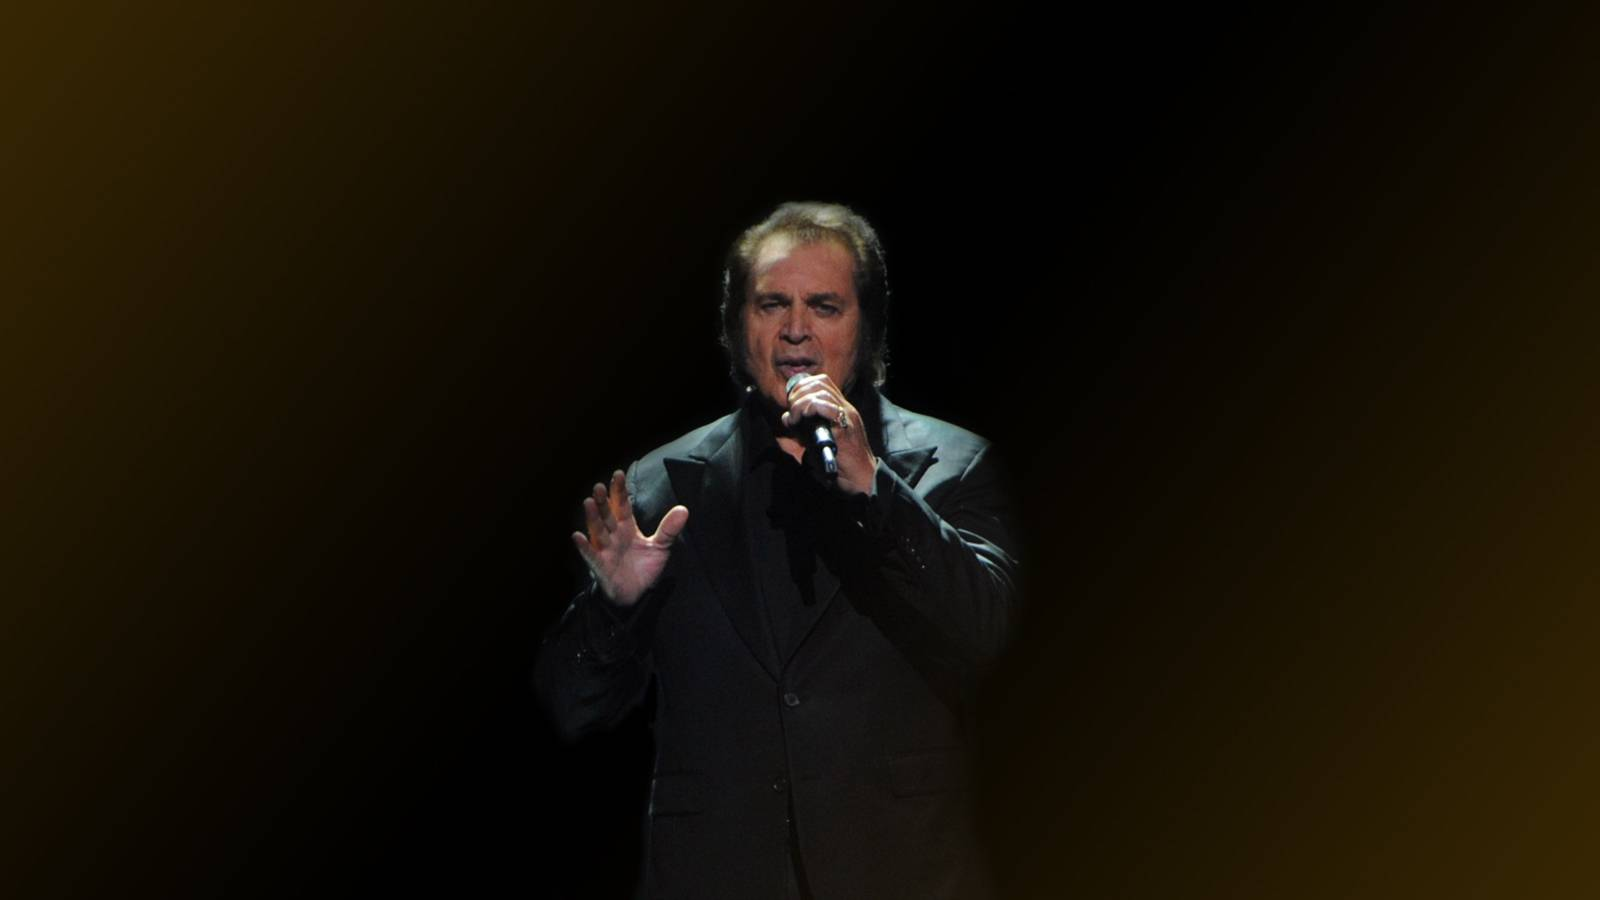 Engelbert Humperdinck (21+ Event) (Rescheduled from 3/28/2020)